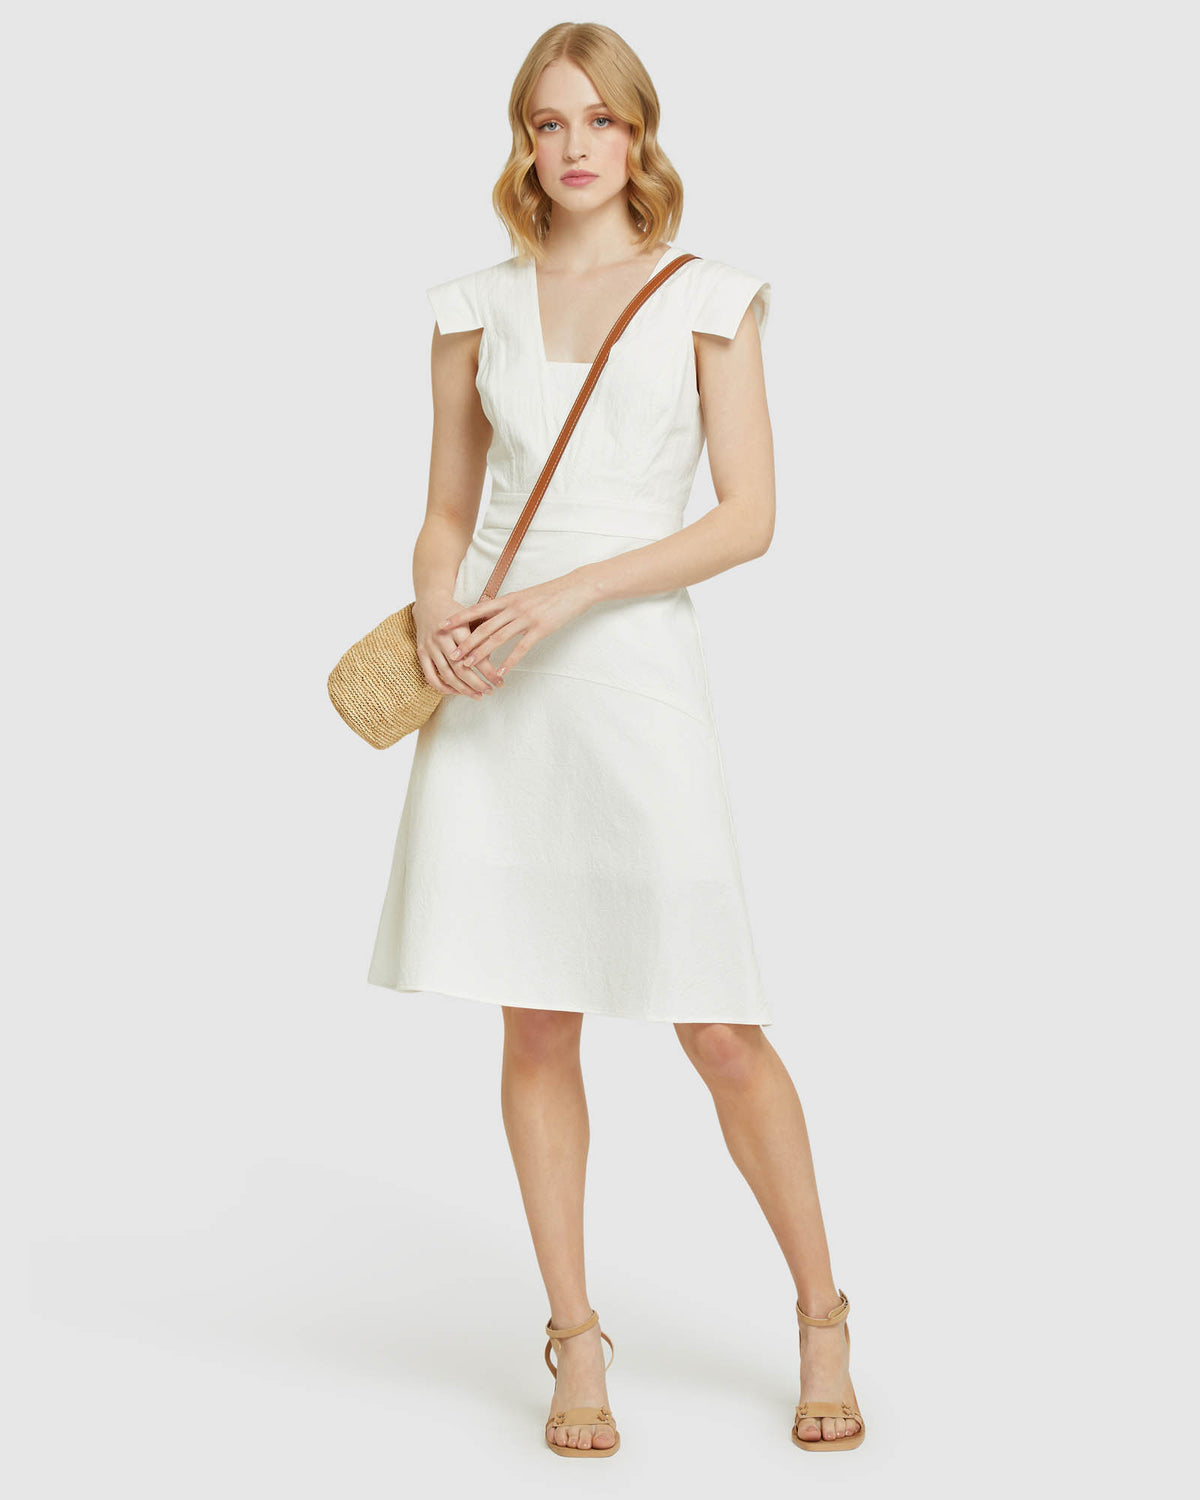 STANMORE COTTON DRESS IVORY